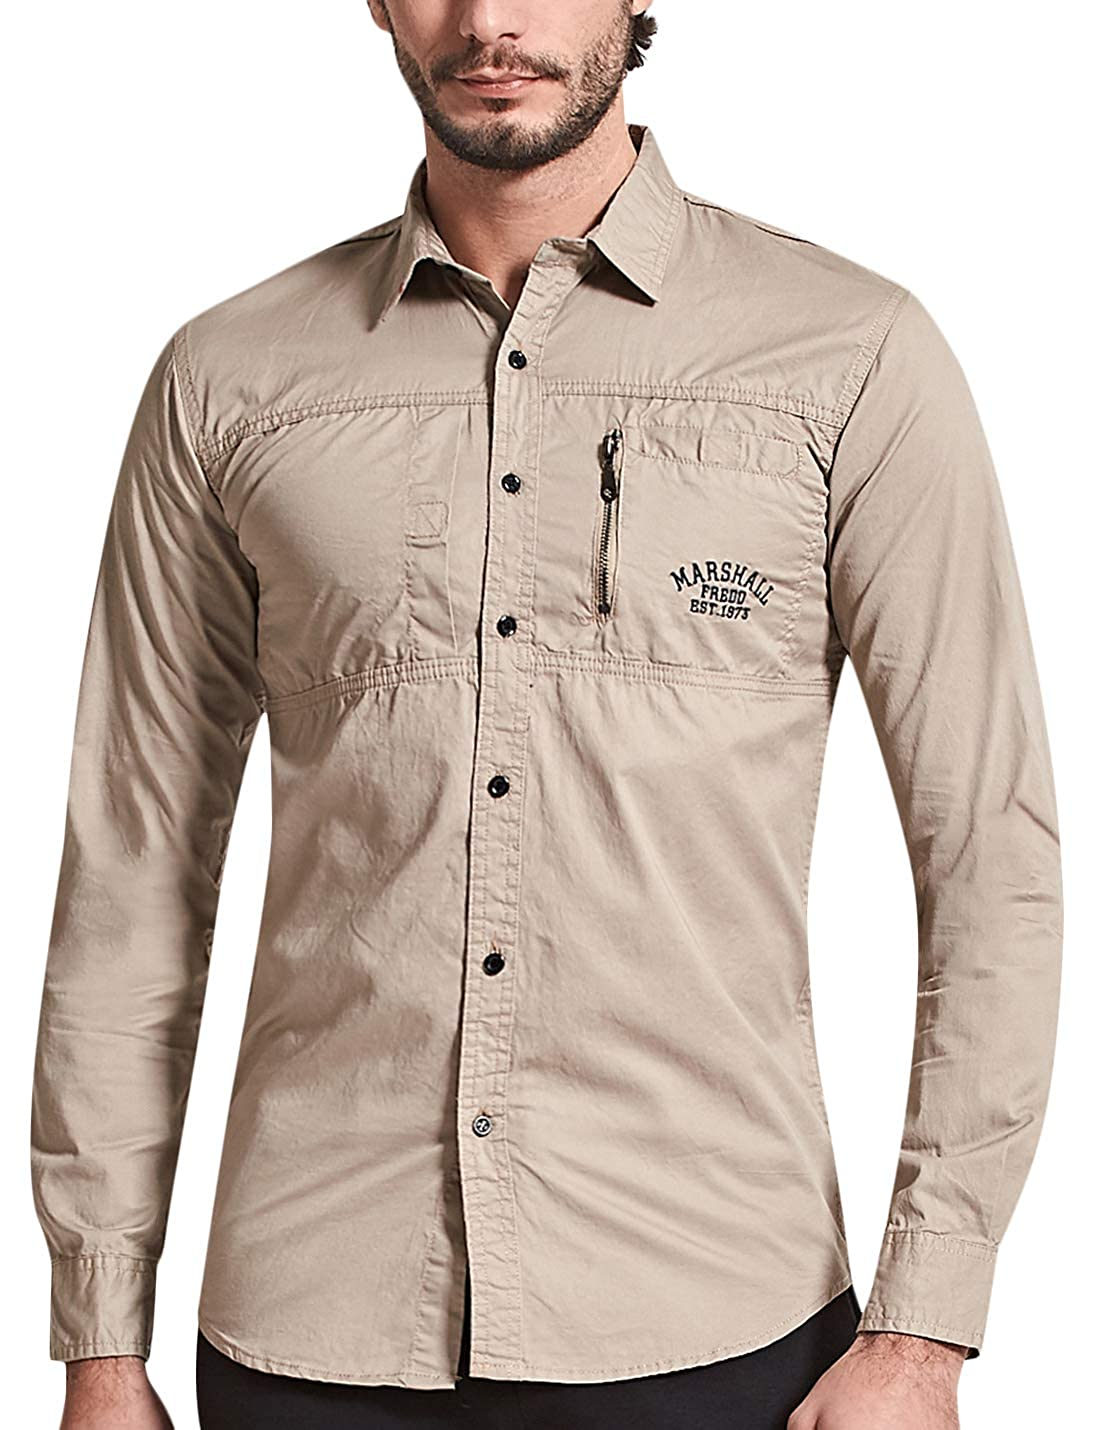 Springrain Mens Casual Military Regular Fit Long Sleeve Button Down Shirt